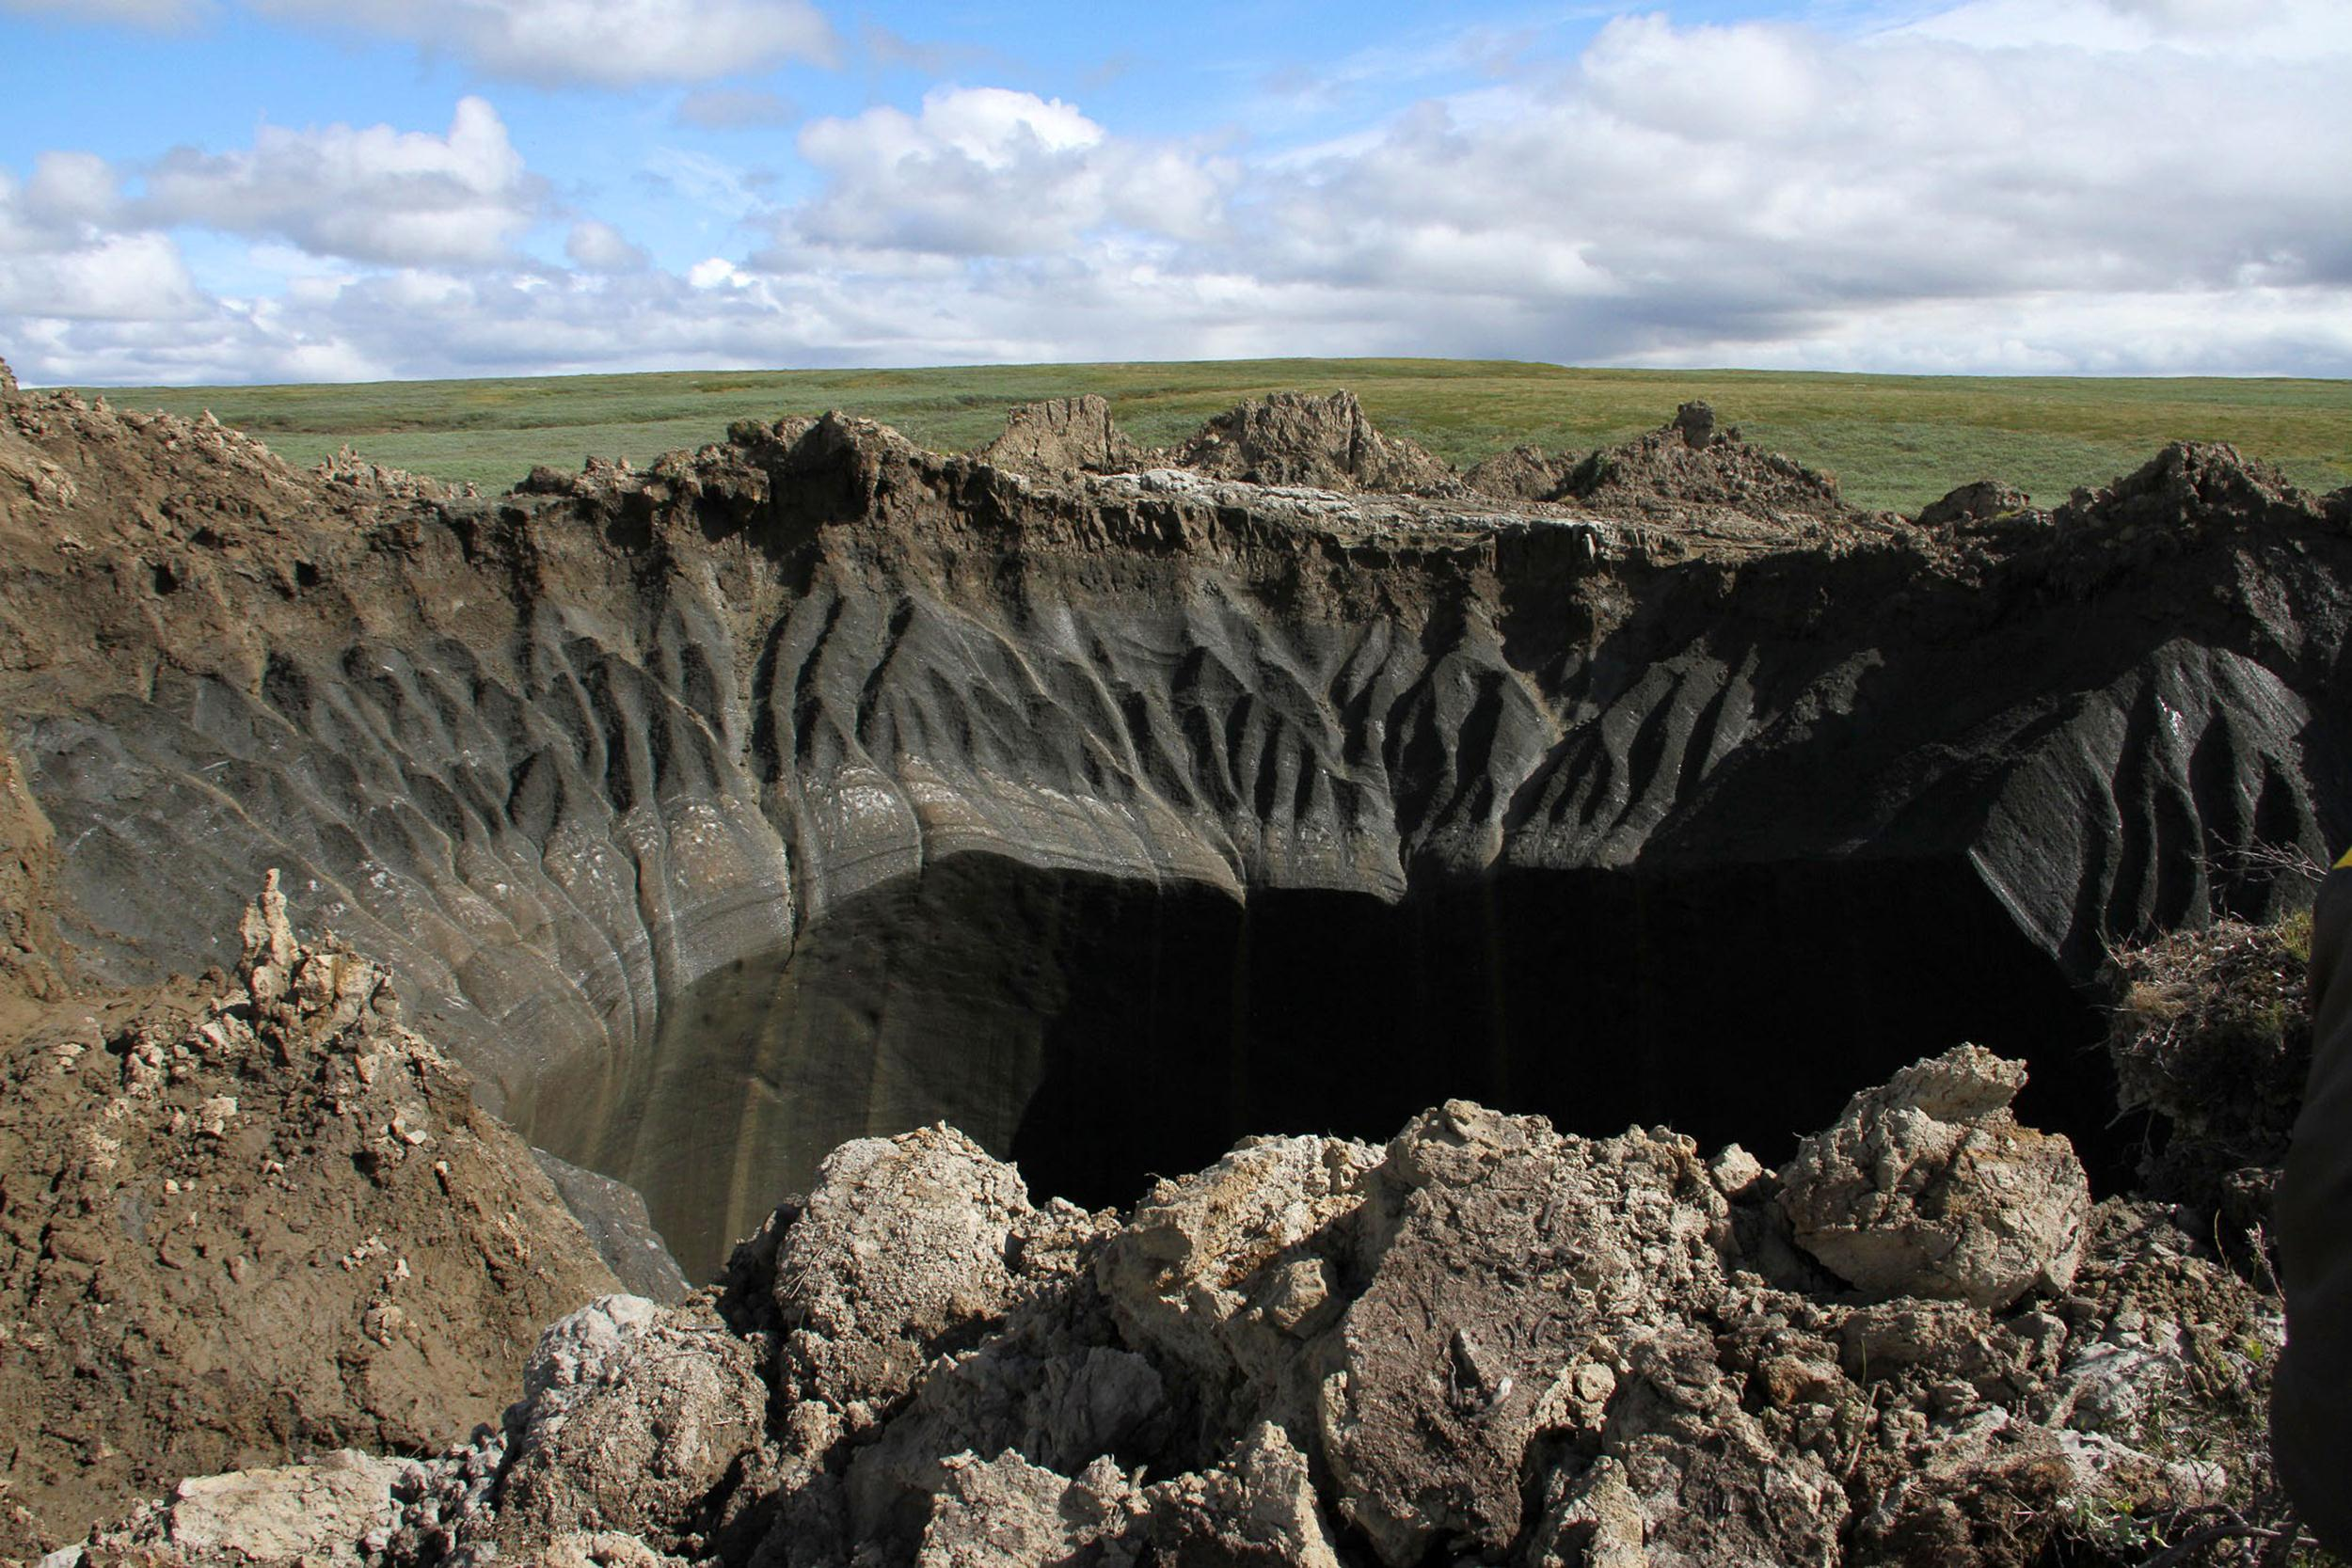 Illisa Ocko: Climate Change Is Creating Massive Craters to Form in Siberia, Time for a Wake Up Call